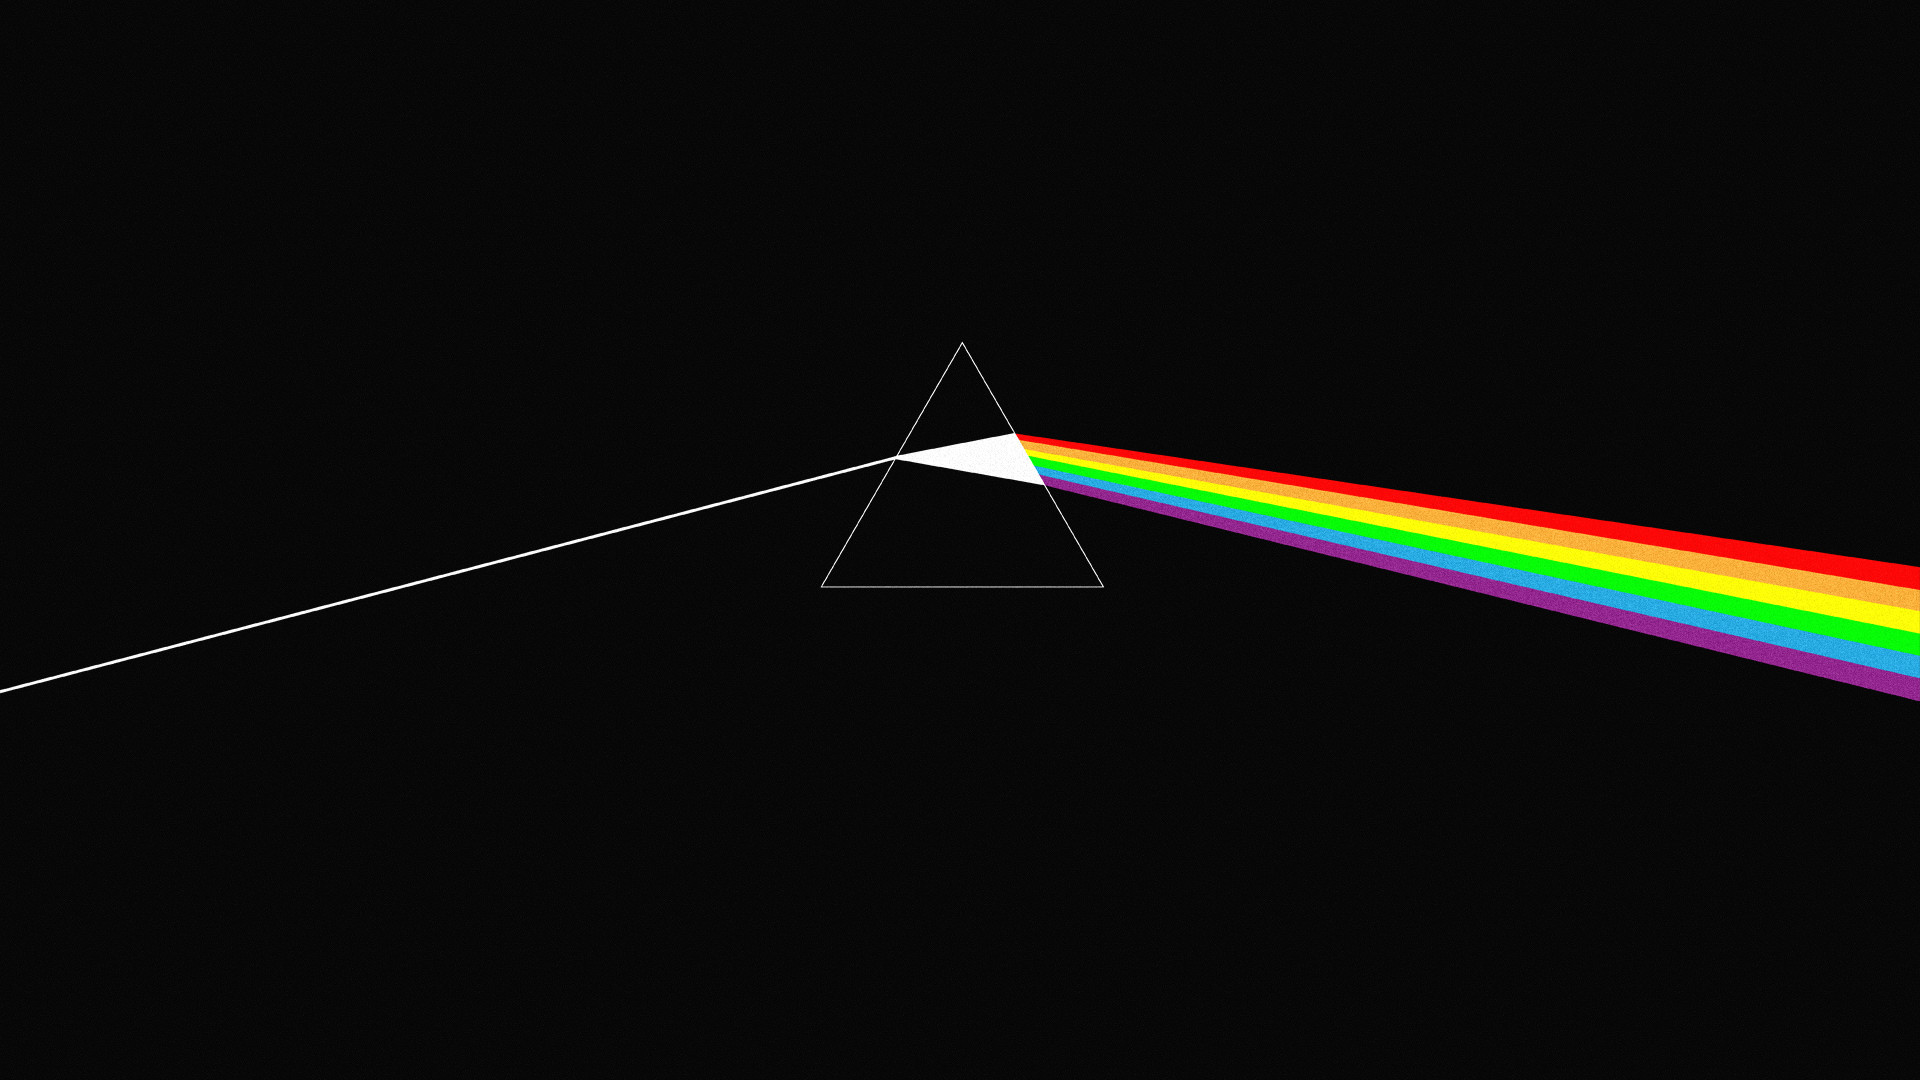 1920x1080 Some cool Pink Floyd backgrounds